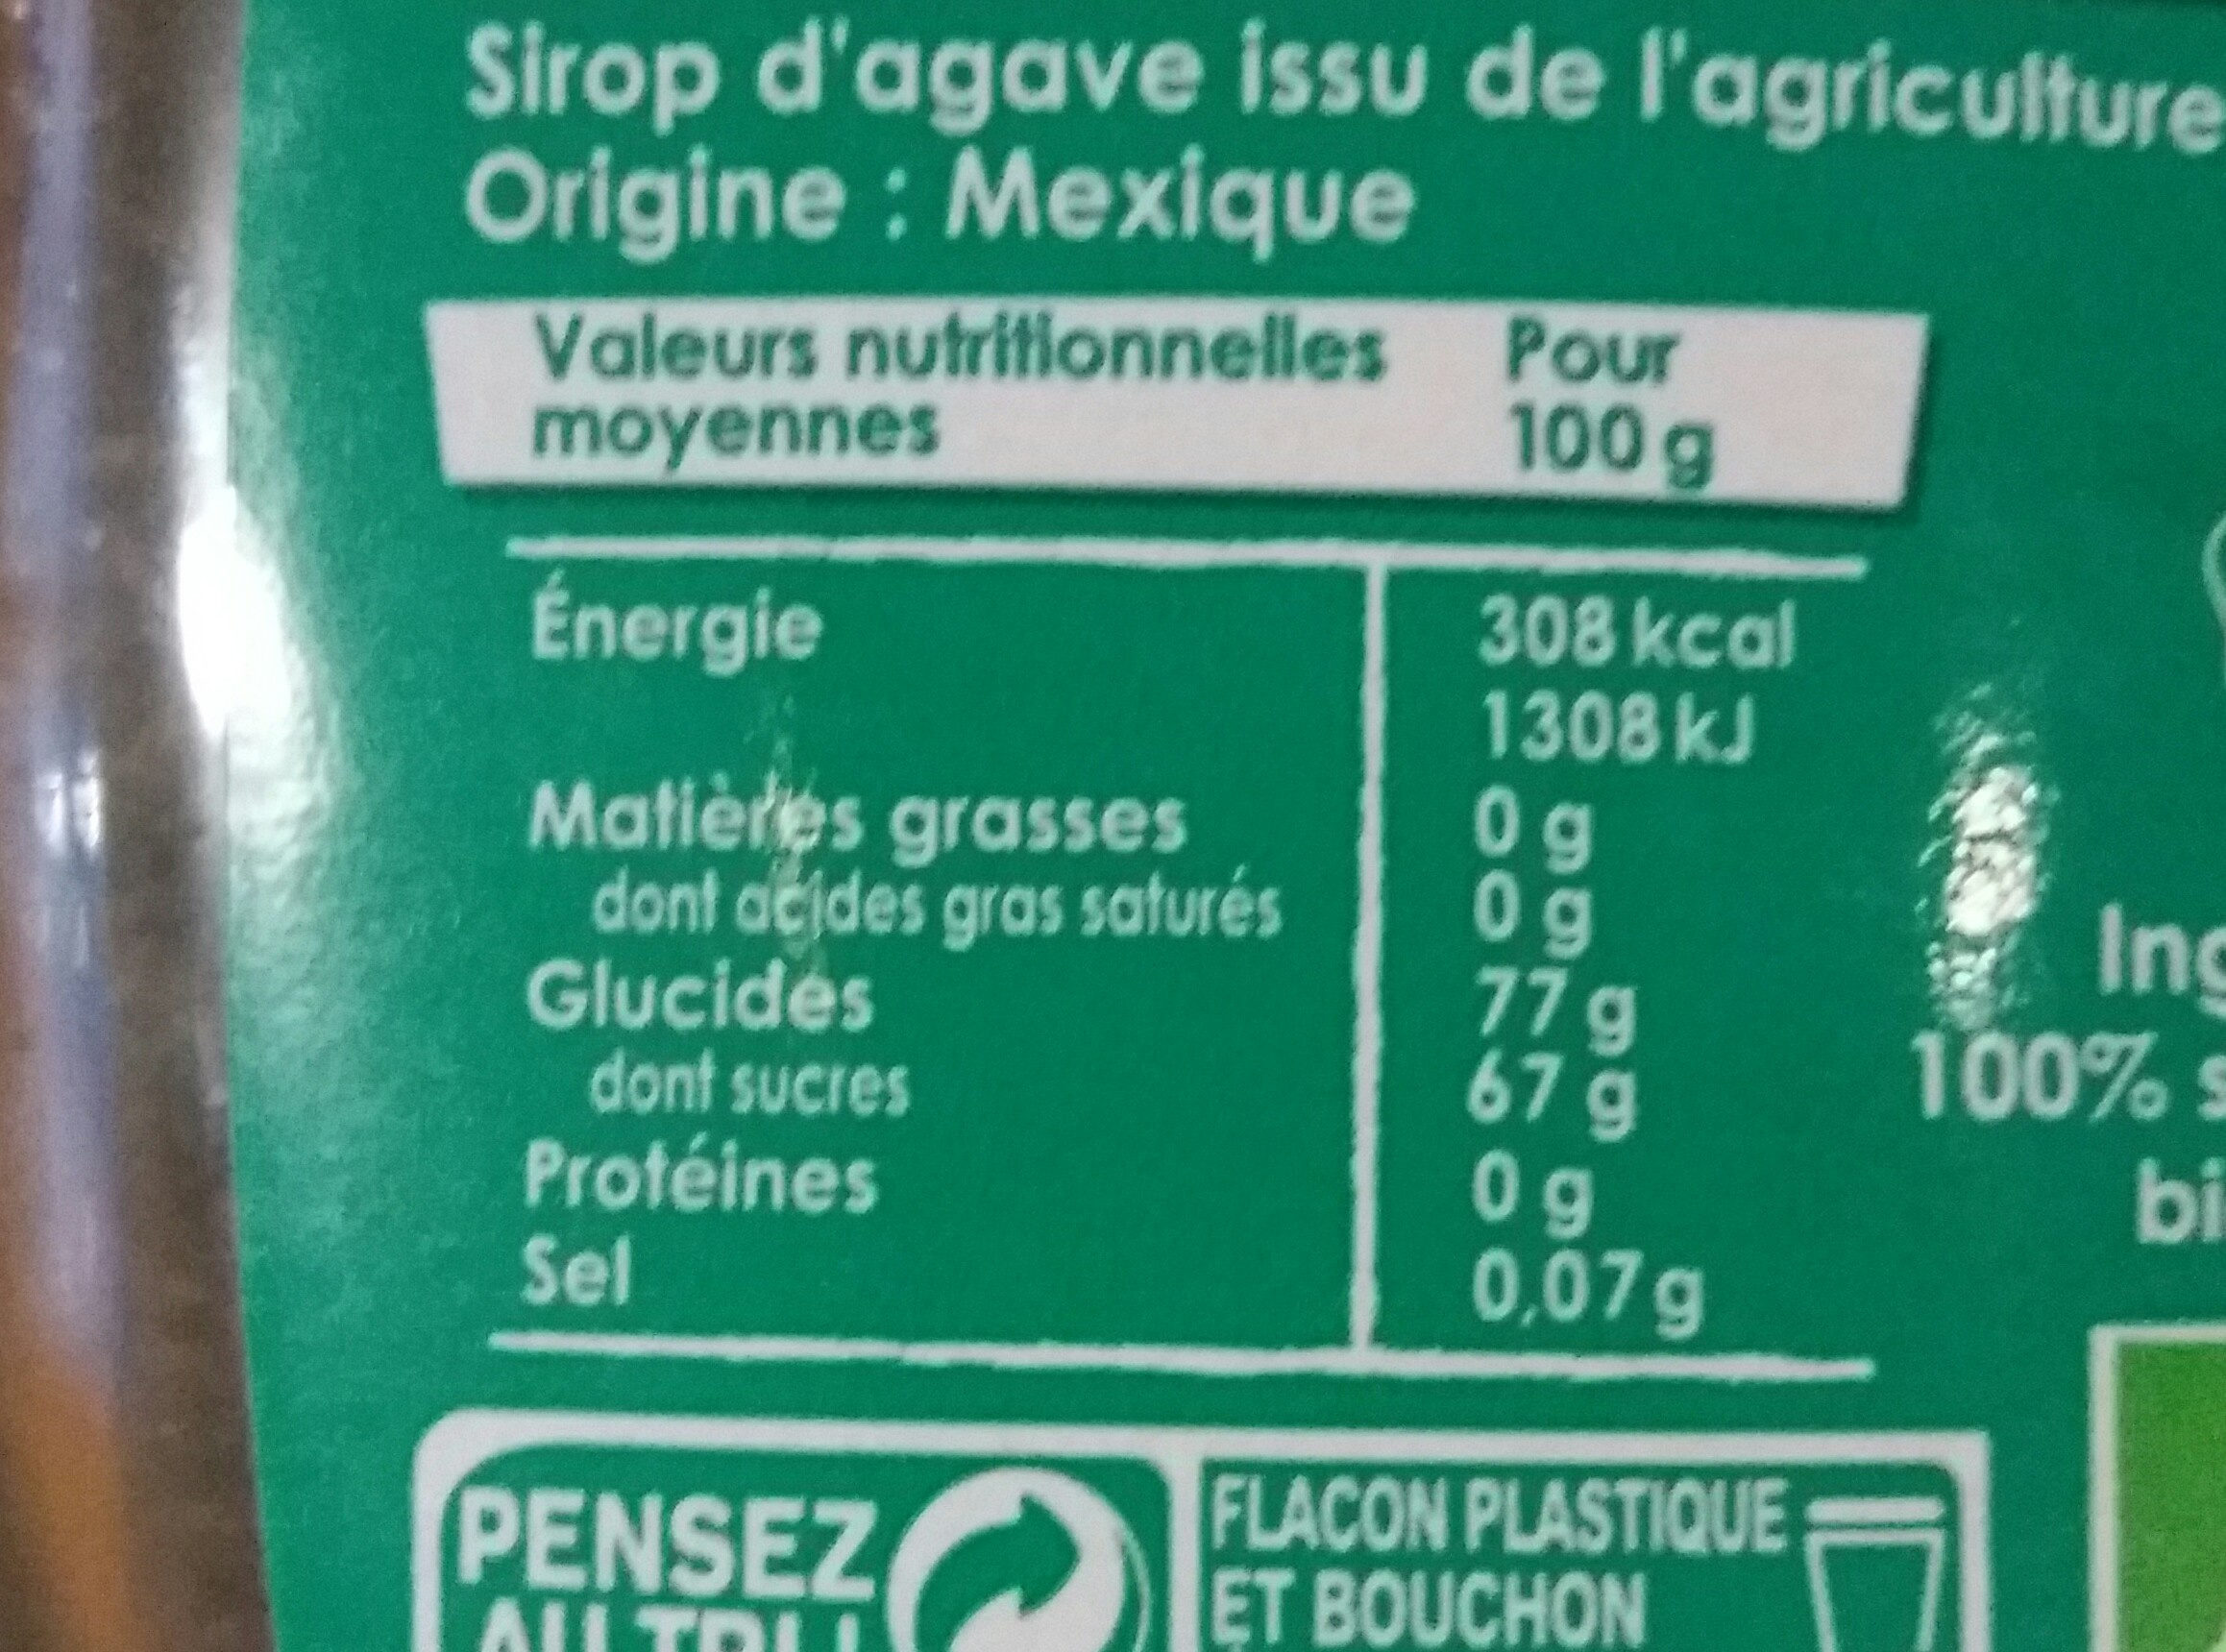 Daddy - Sirop d'agave - Informations nutritionnelles